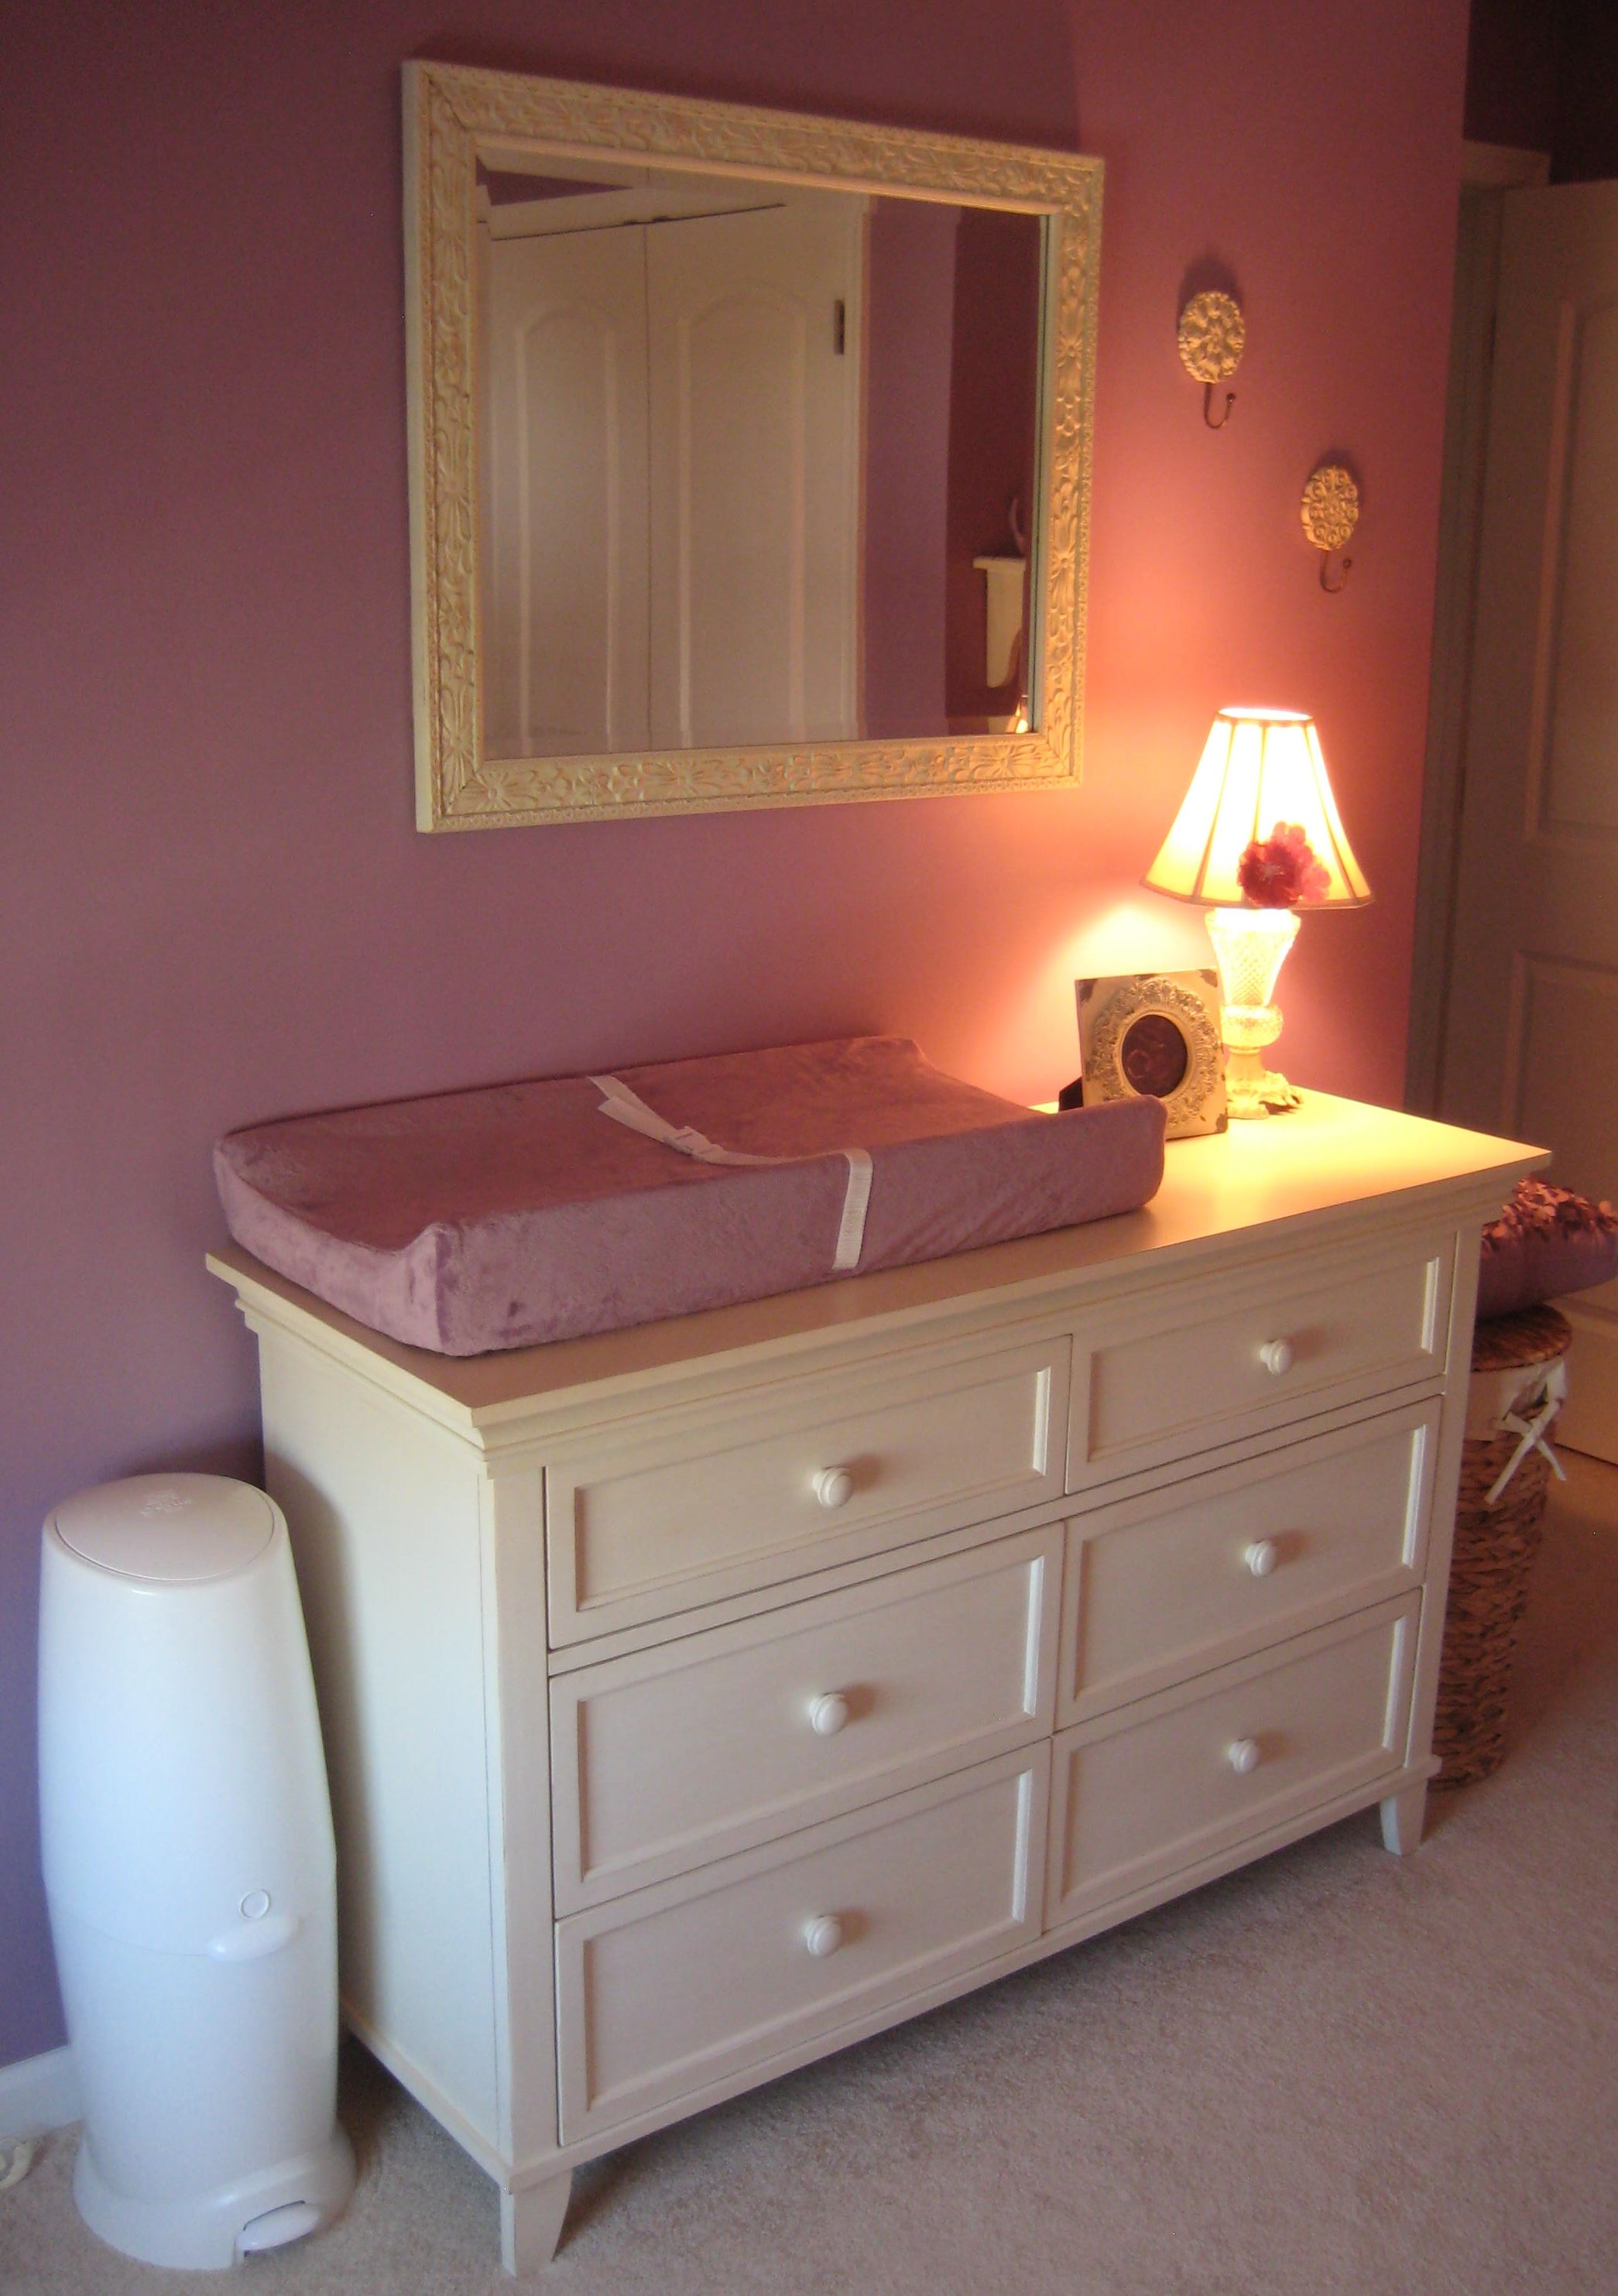 Purple U0026 Ivory. I Especially Like The Dresser/changing Table Area Complete  With Mirror And Lamp For Late Night Diaper Changes.